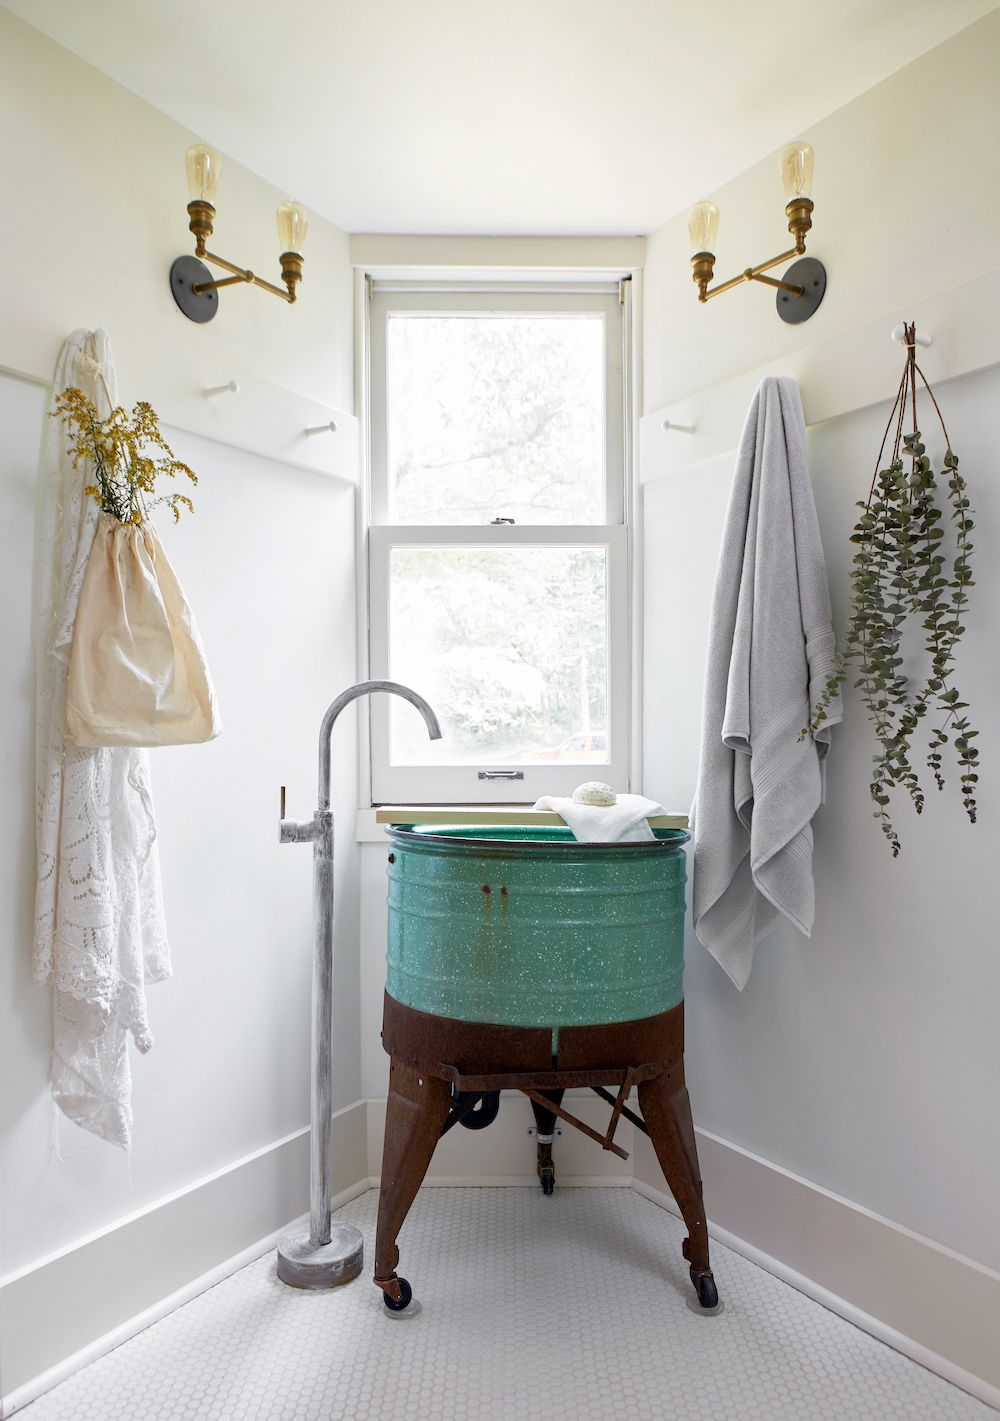 21 Bathroom Storage And Organization Ideas How To Organize Your Bathroom Counter And Vanity